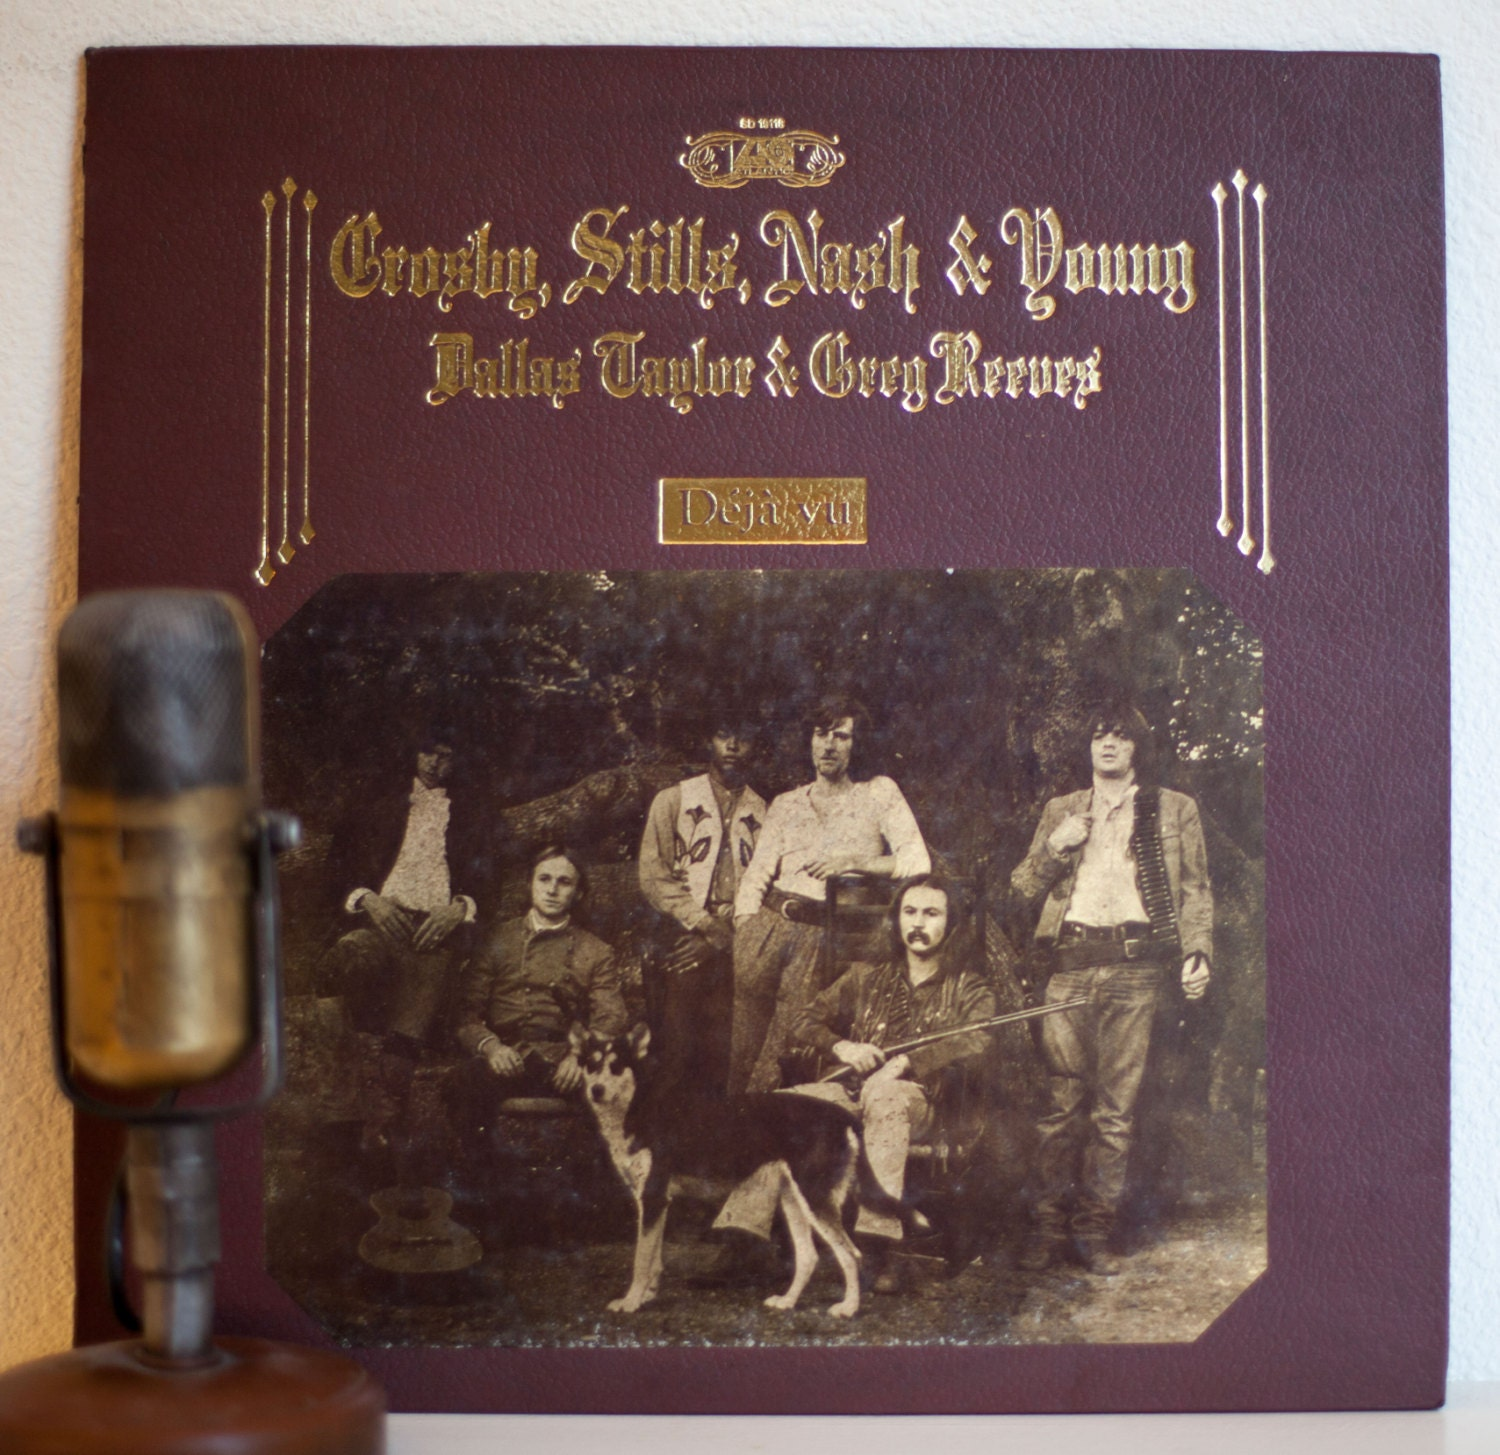 Crosby Stills Nash Woodstock 1971: CSNY Vintage Vinyl LP Record Album 1970s Crosby Stills Nash